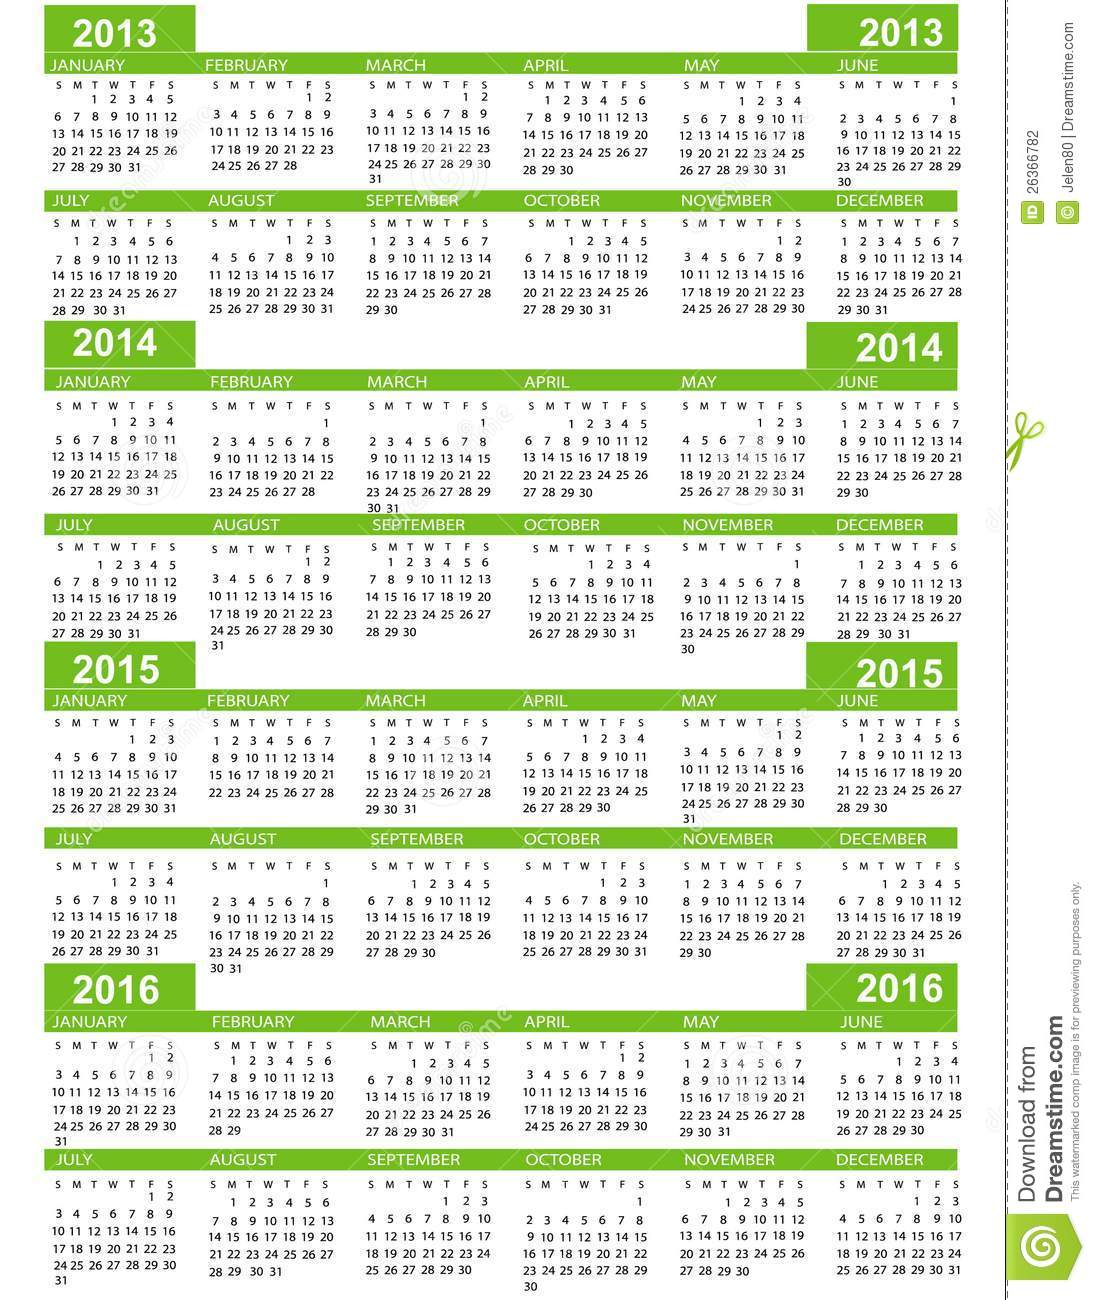 kalender nieuwjaar 2013 2014 2015 2016 stock fotografie afbeelding 26366782. Black Bedroom Furniture Sets. Home Design Ideas